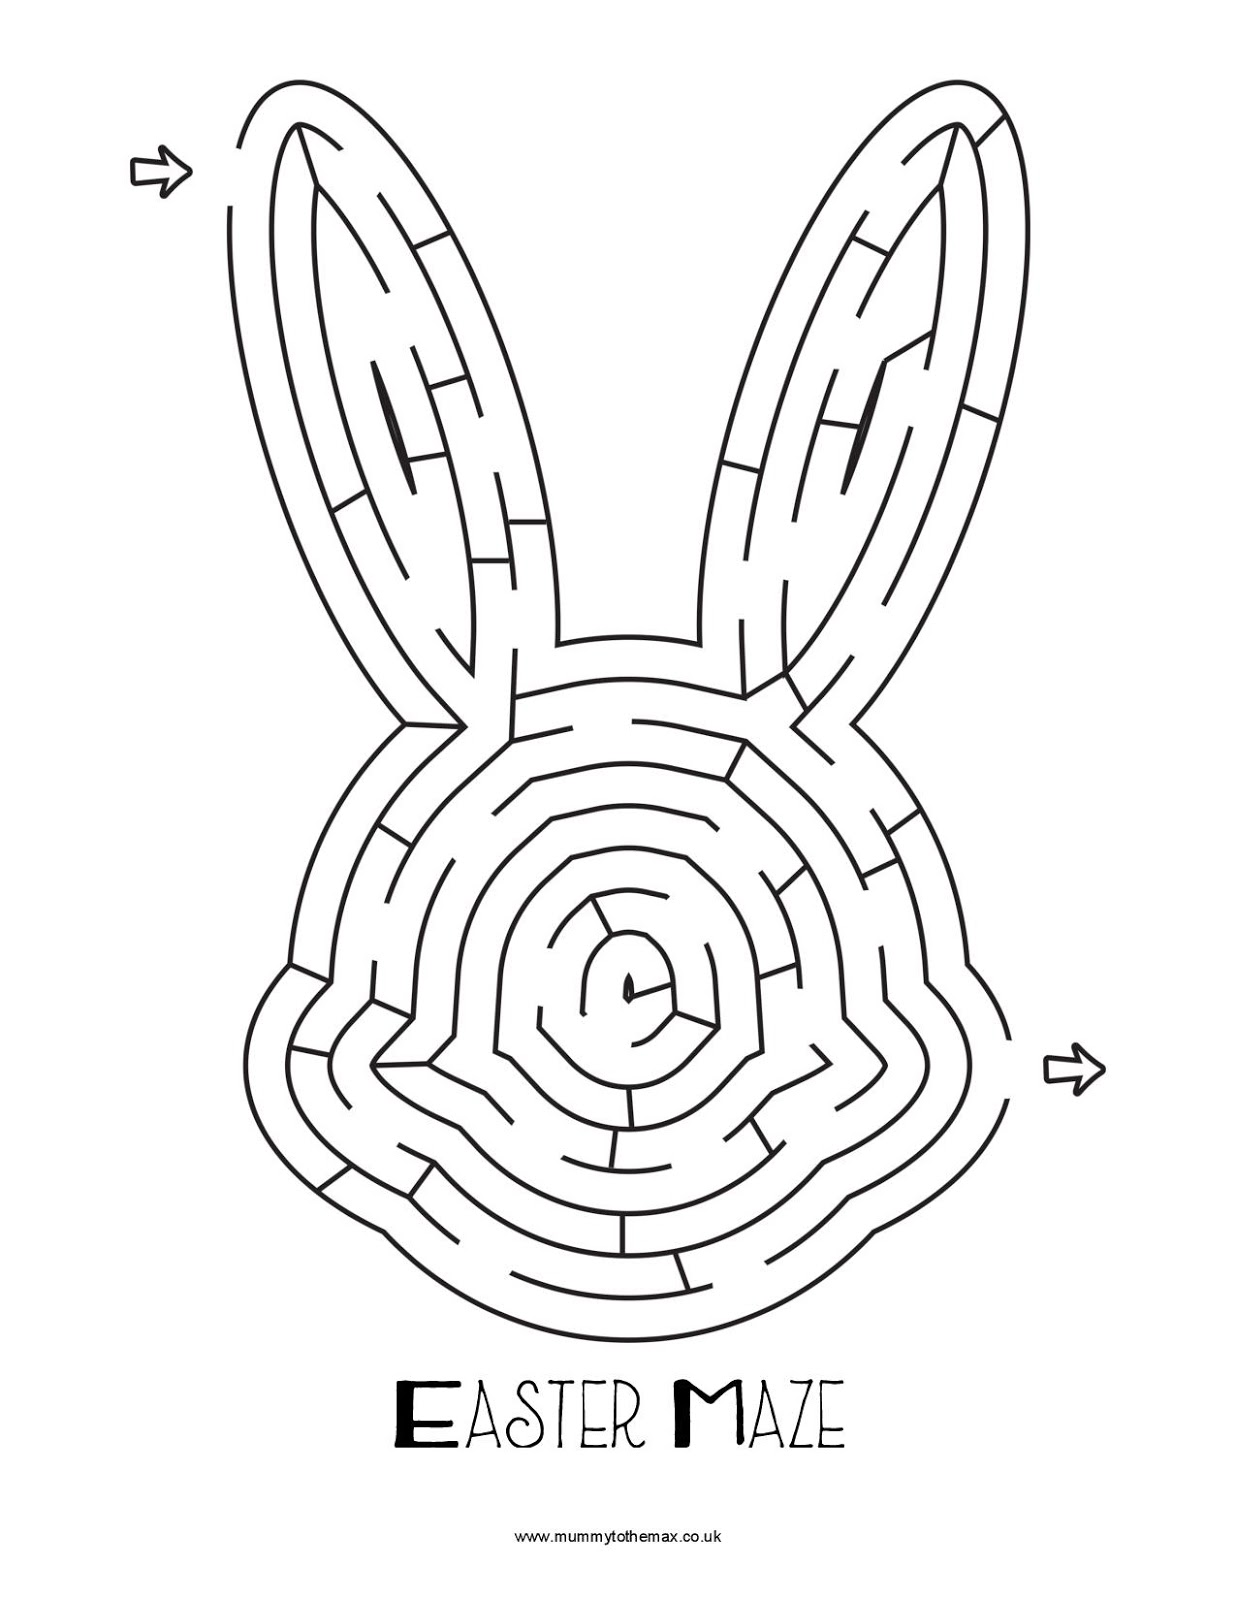 graphic relating to Easter Maze Printable called Easter Maze Absolutely free Printable - MUMMY Towards THE MAX